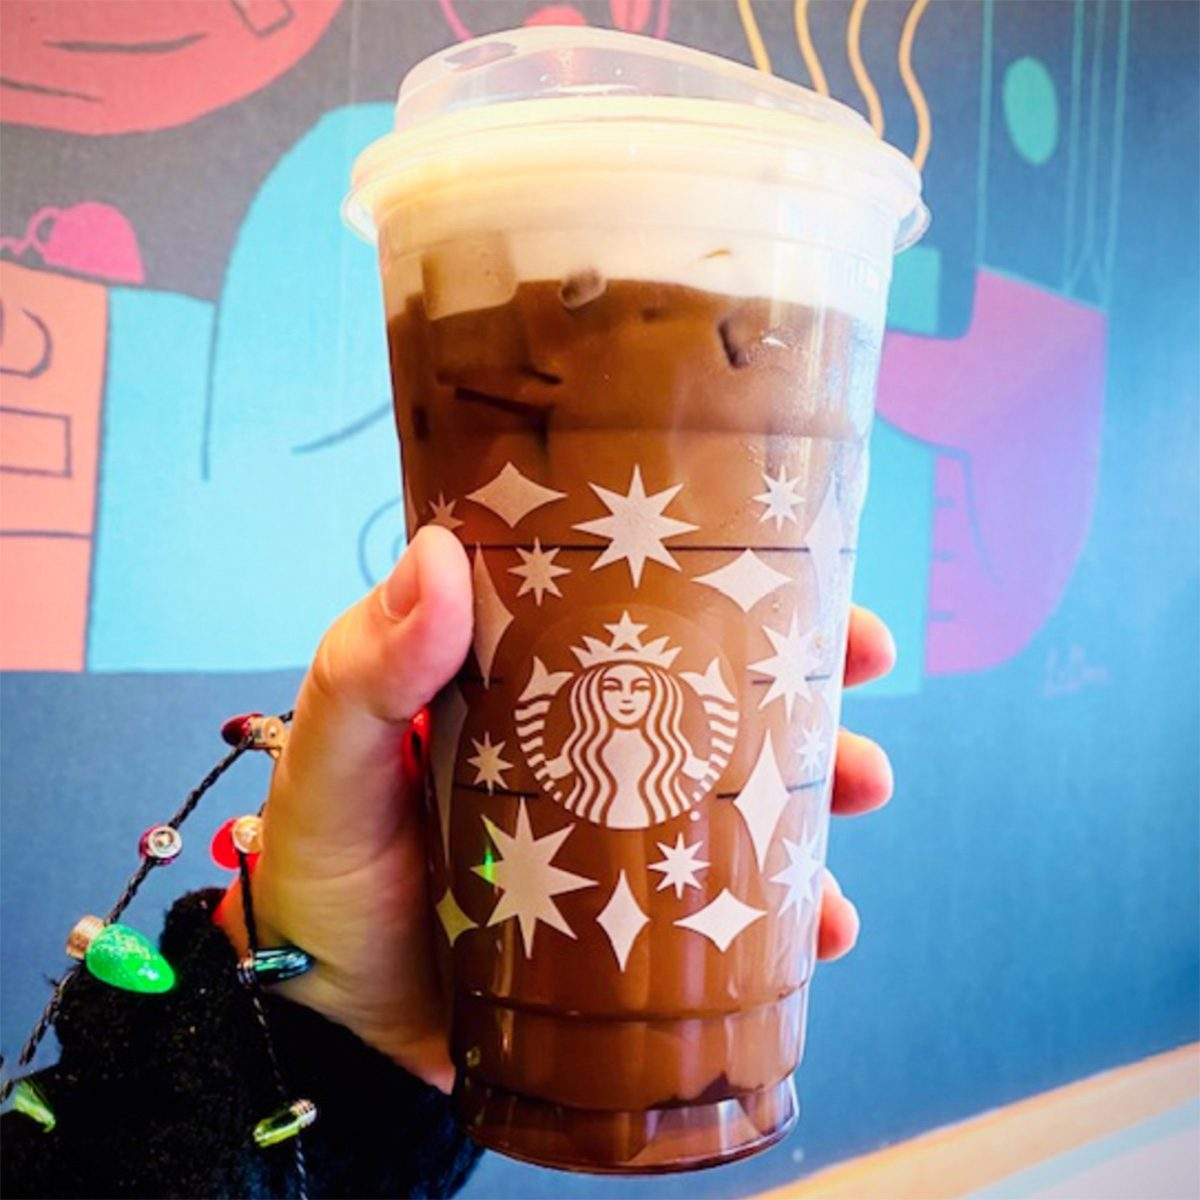 ANDES MINT COLD BREW AT STARBUCKS